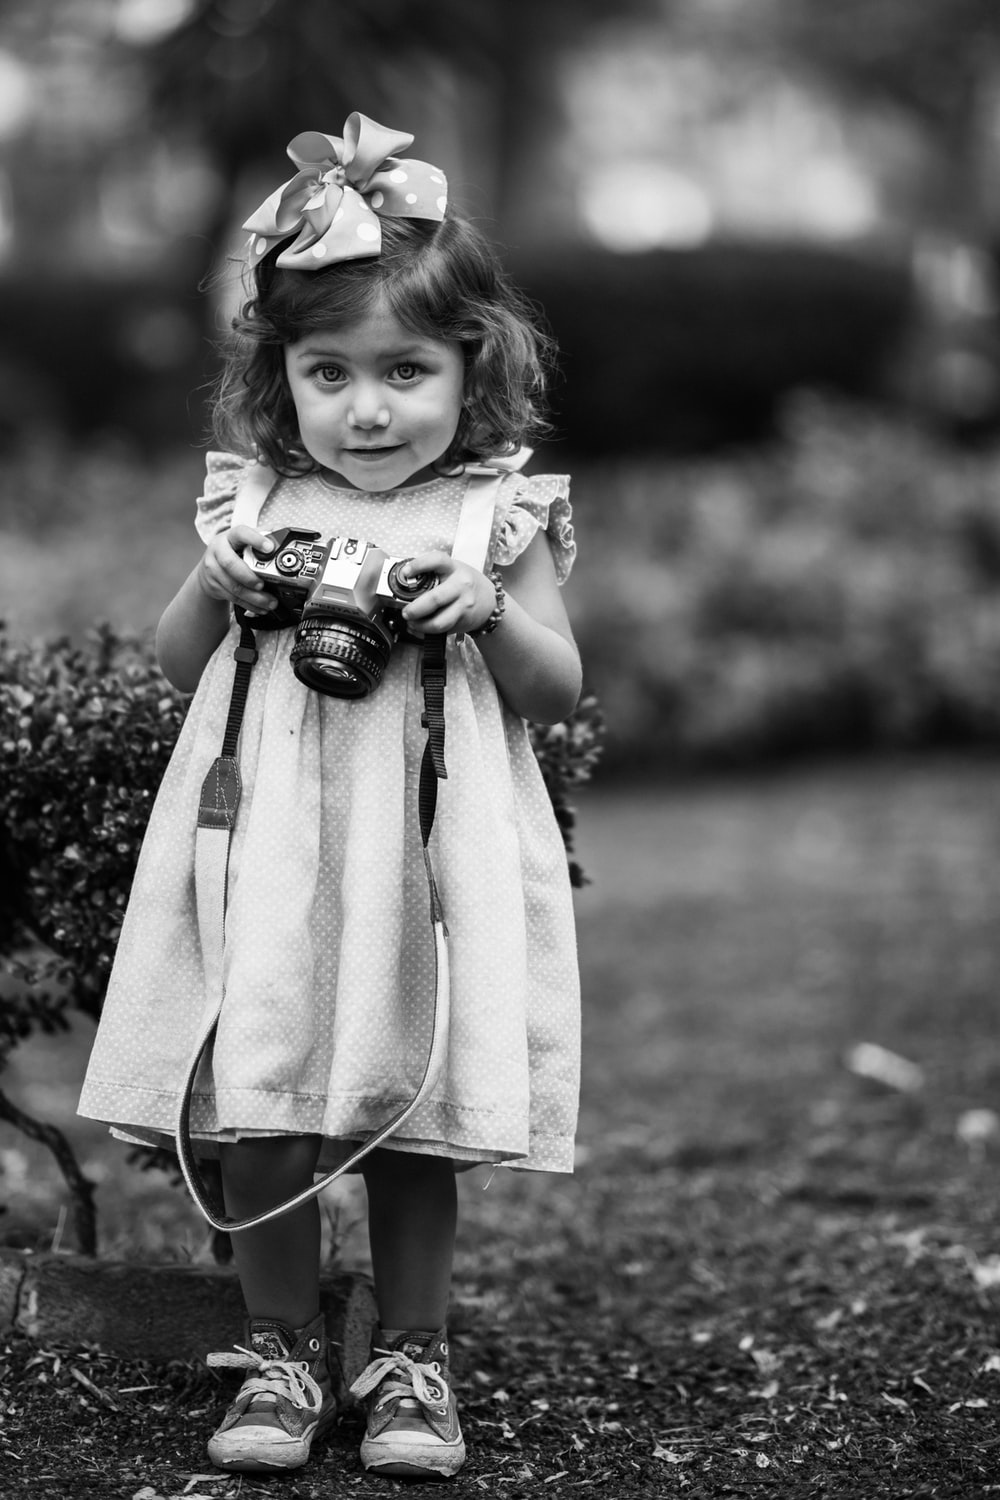 girl holding DSLR camera in grayscale photo